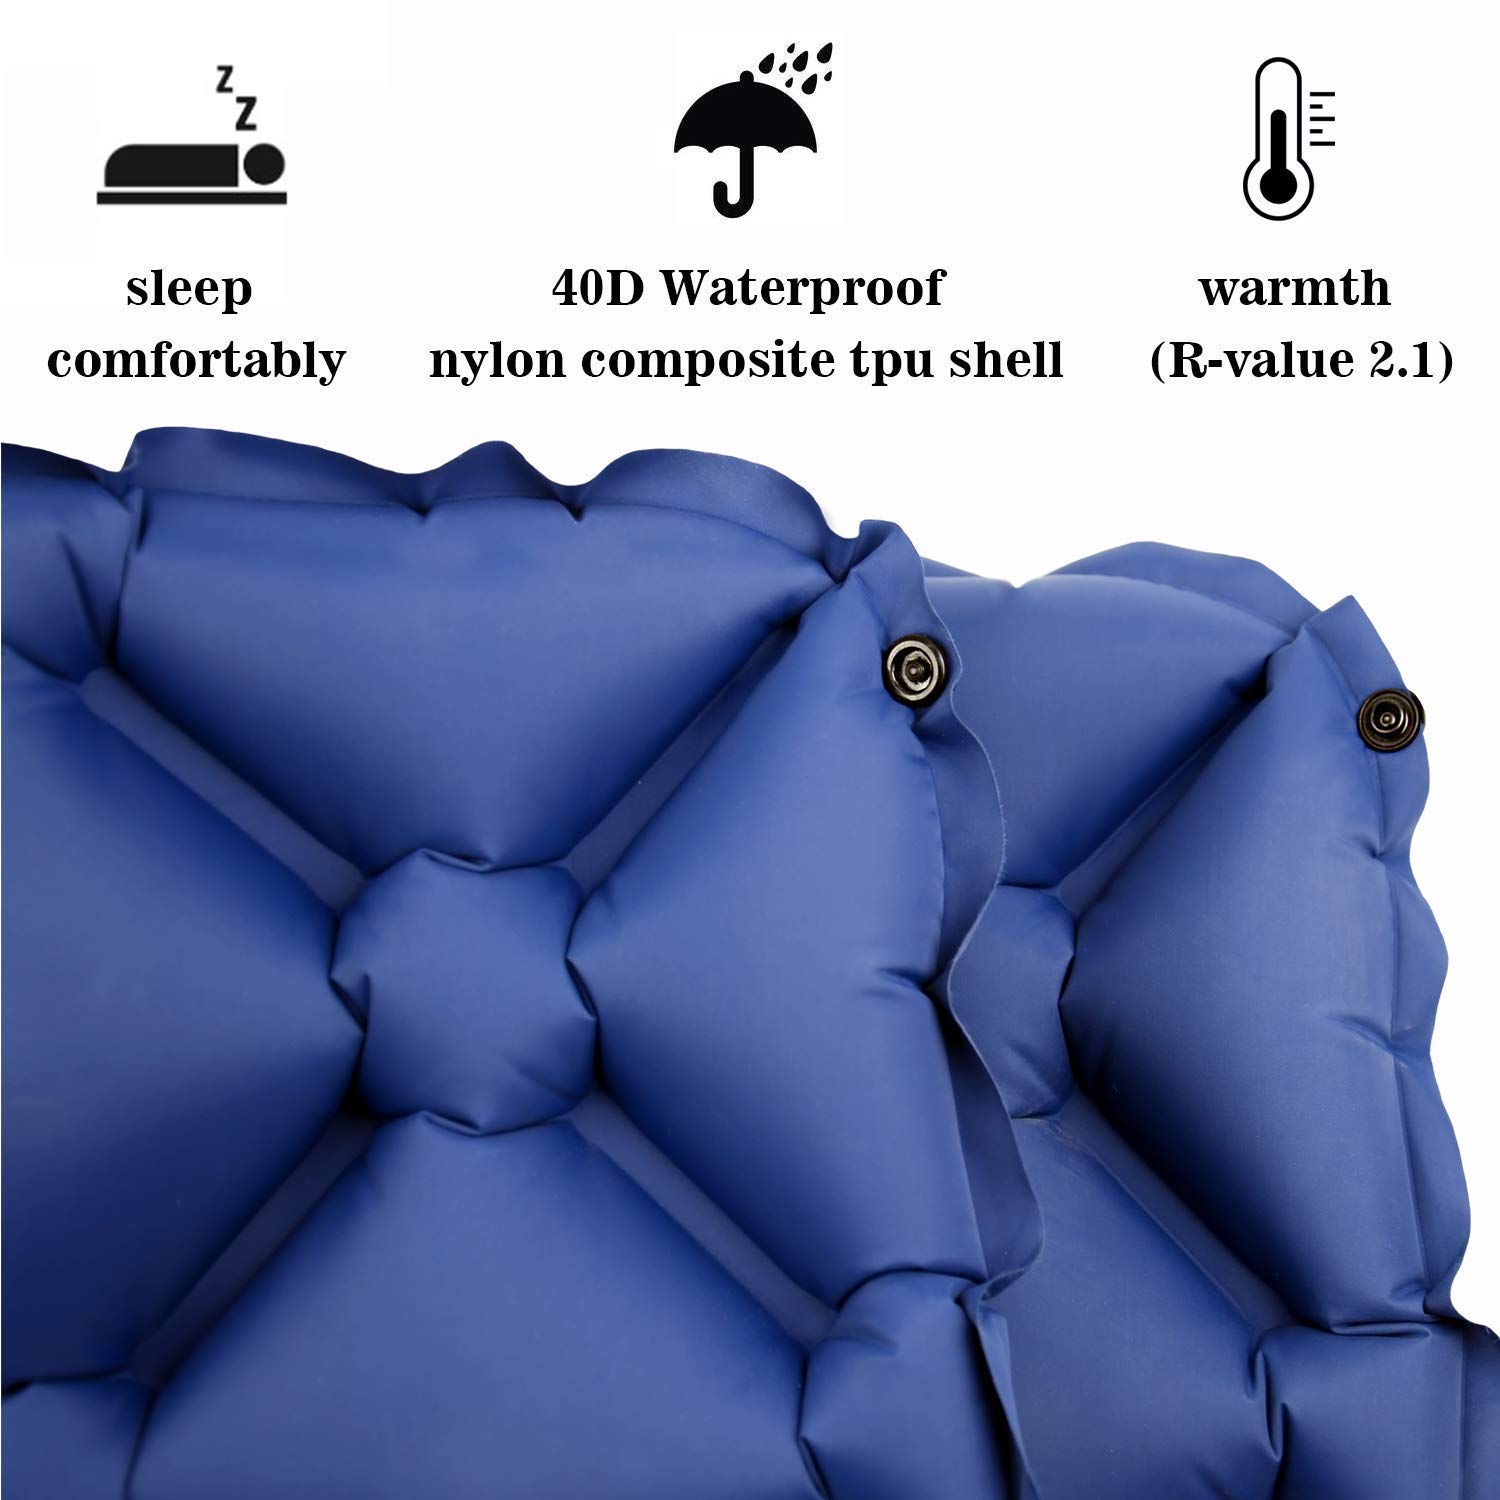 Camping Sleeping Pad for 2 Person – Inflatable Sleeping Pad, Ultralight Sleeping Mat Come with Connect Buckles, Ultralight Air Sleeping Pad, Folding Camping Mat for Outdoor Backpacking Travel